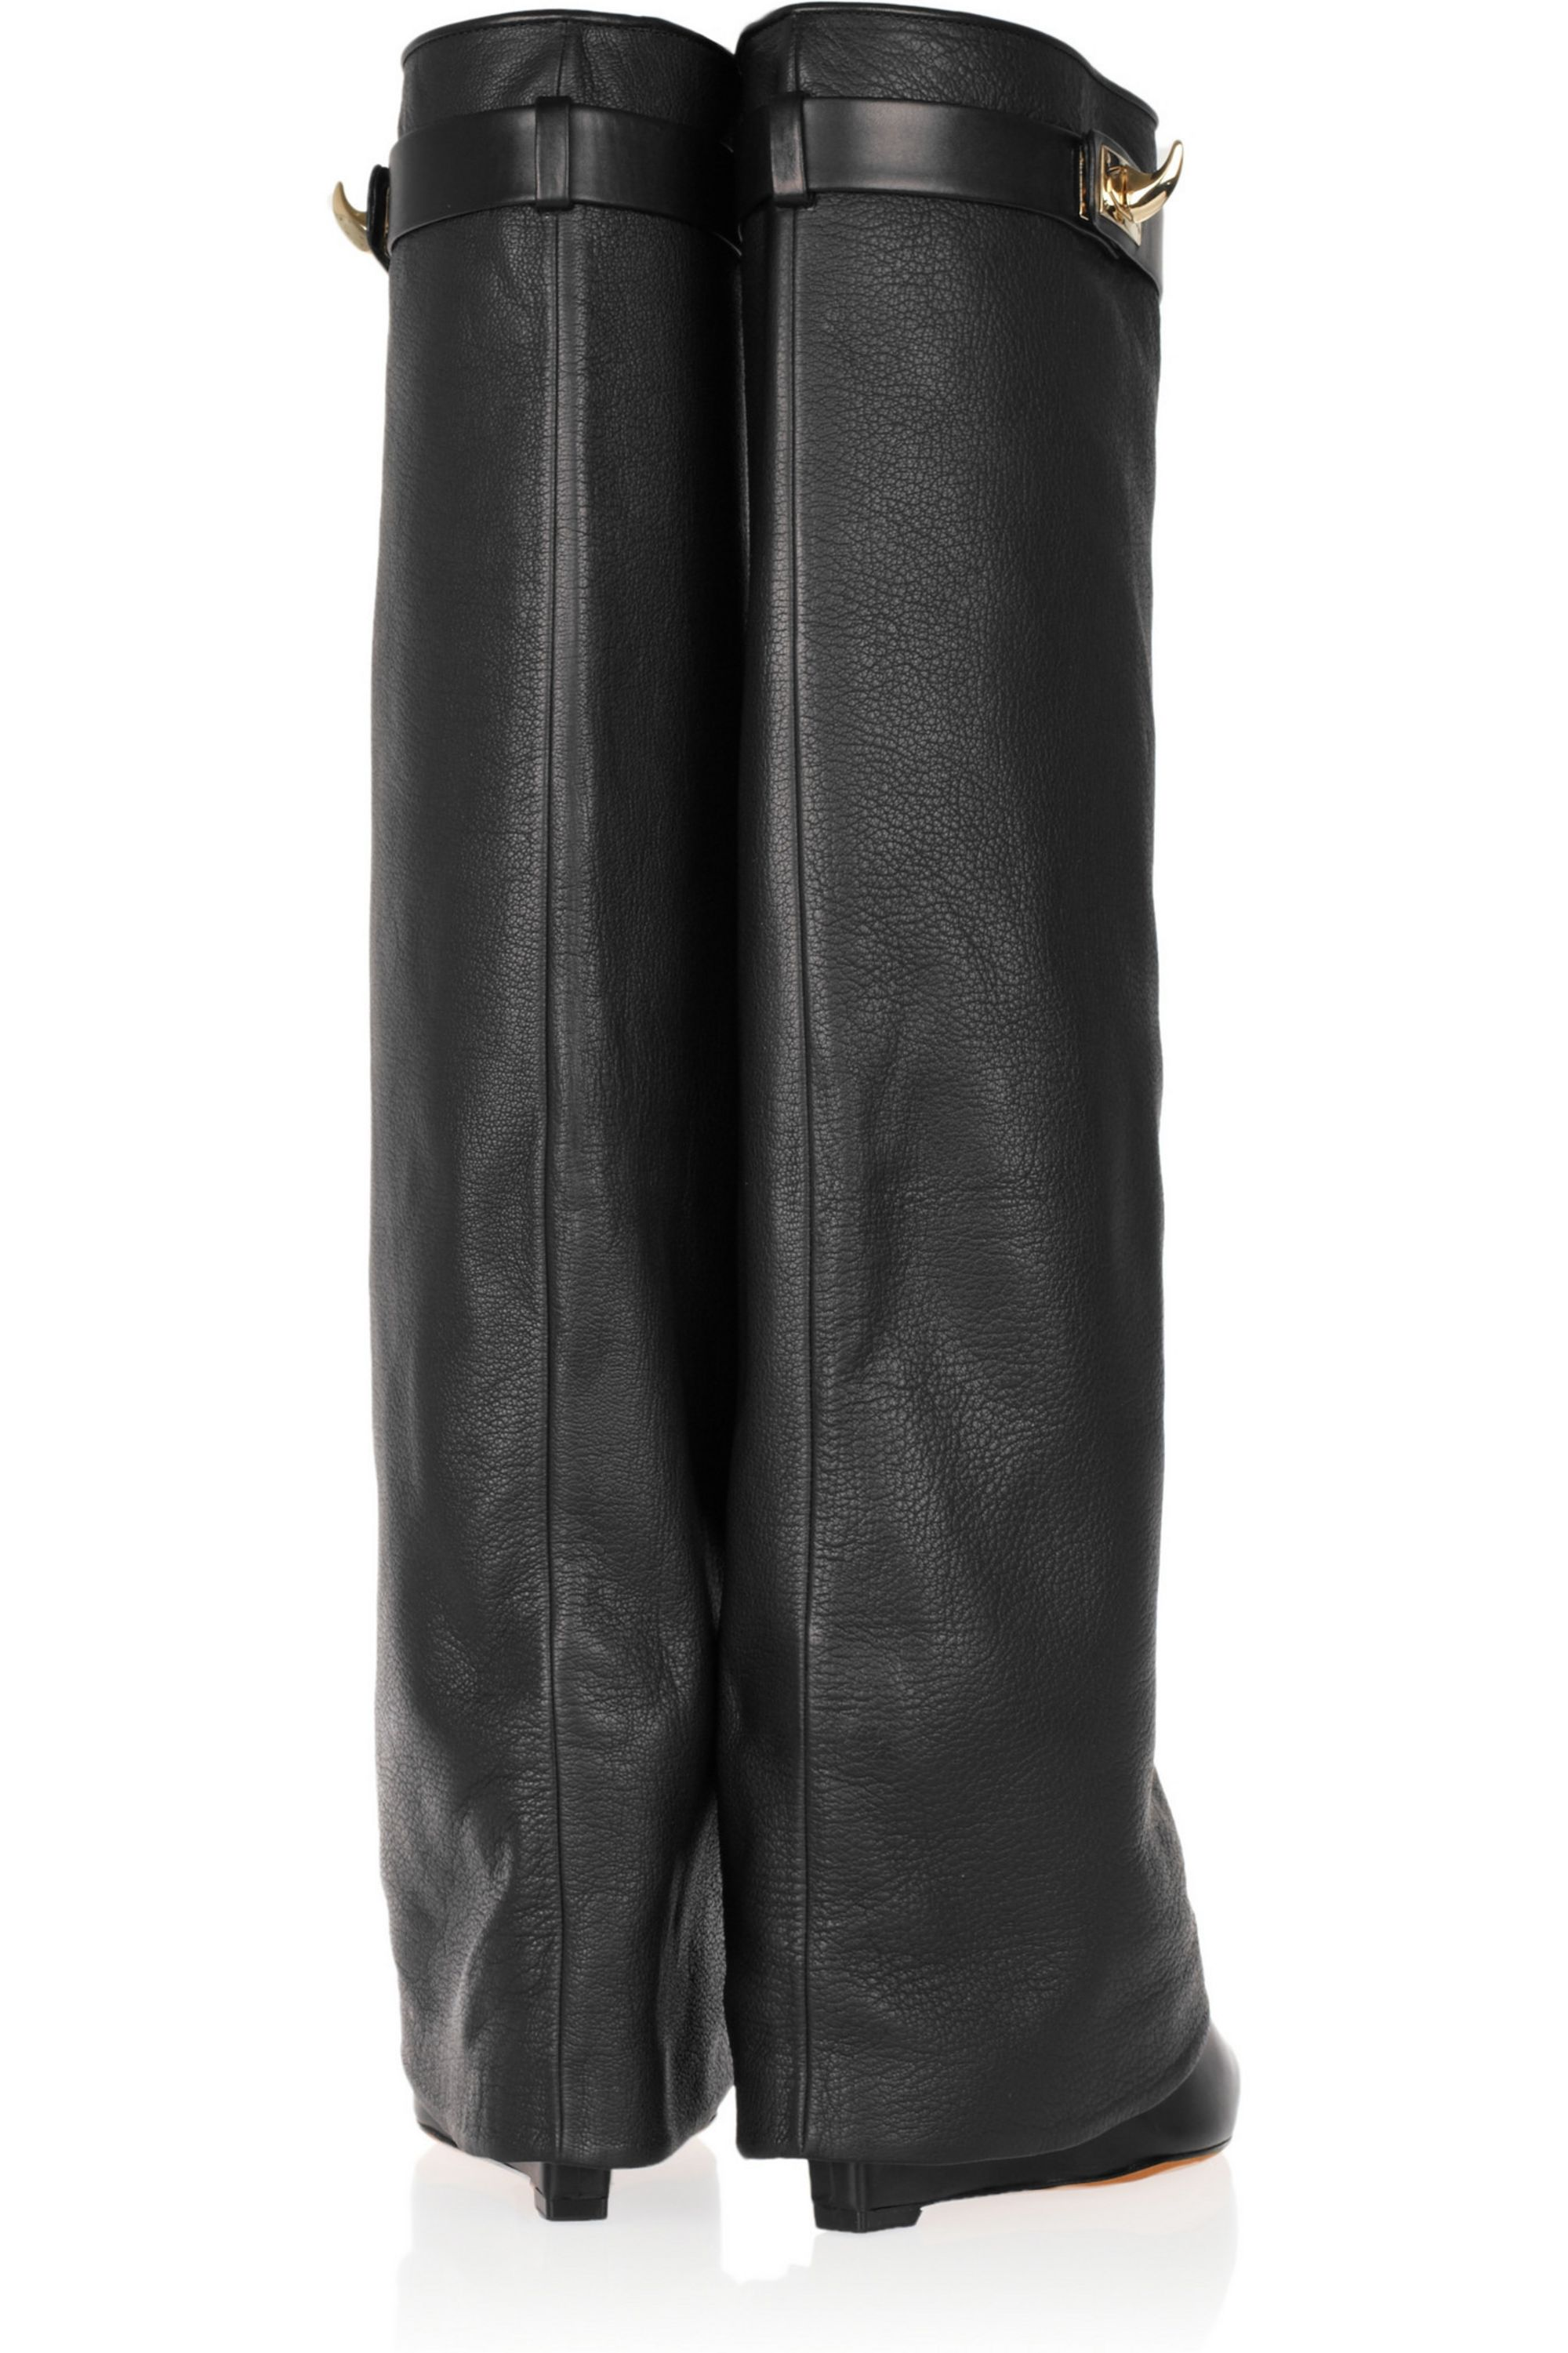 Givenchy Shark Lock leather wedge knee boots